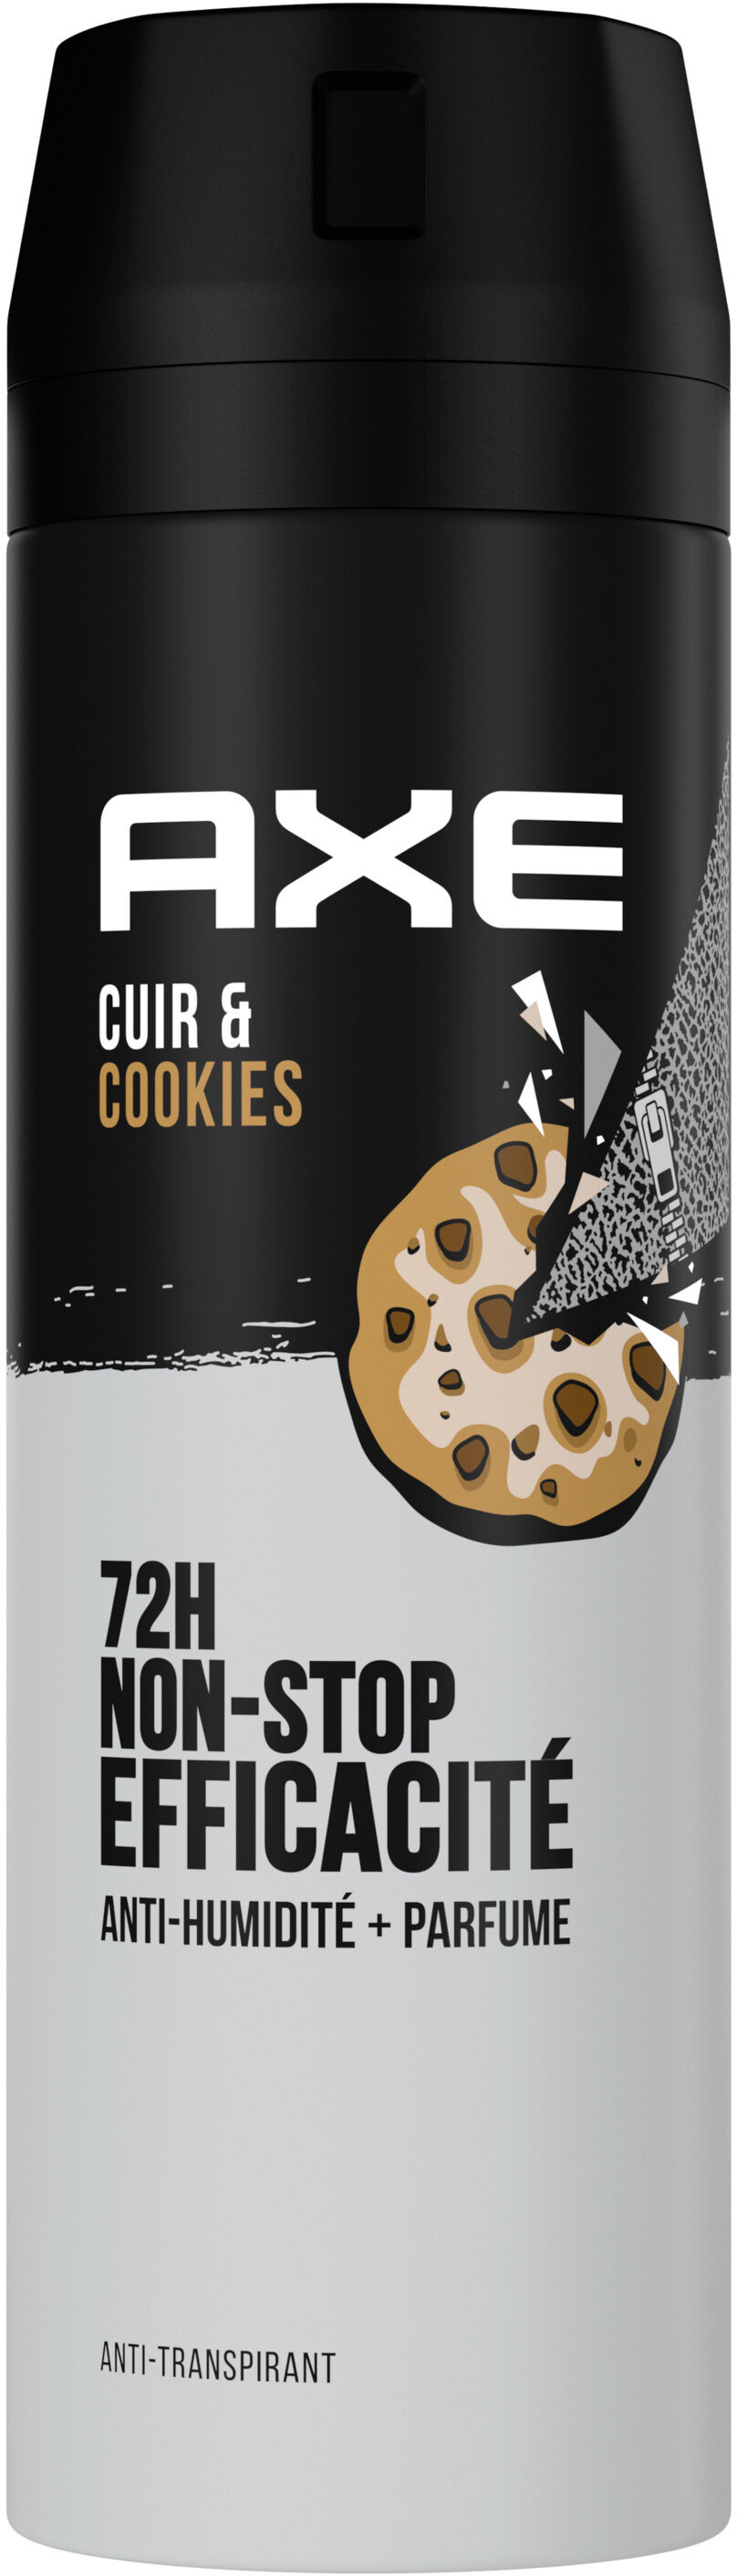 AXE Anti-Transpirant Homme Collision Cuir & Cookies 72h Anti-Humidité - Product - fr